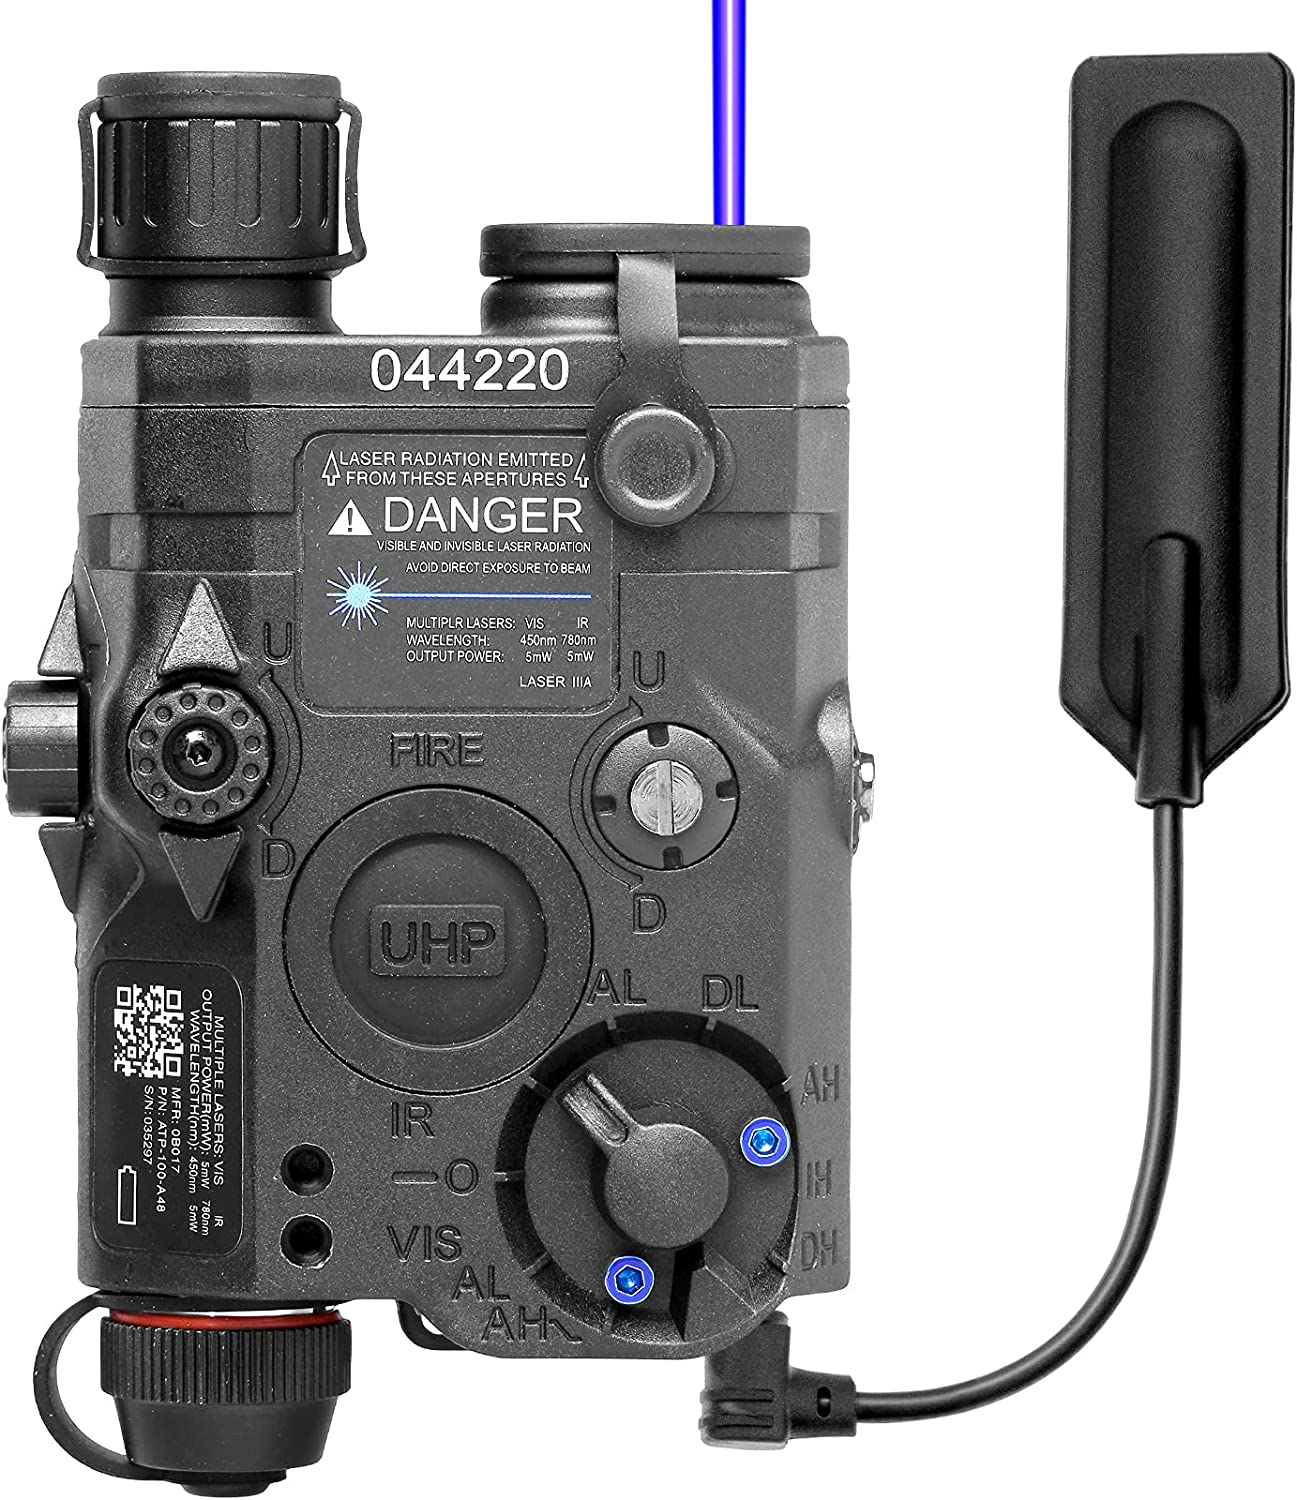 ACTIONUNION Air Soft Laser With LED Flash Light